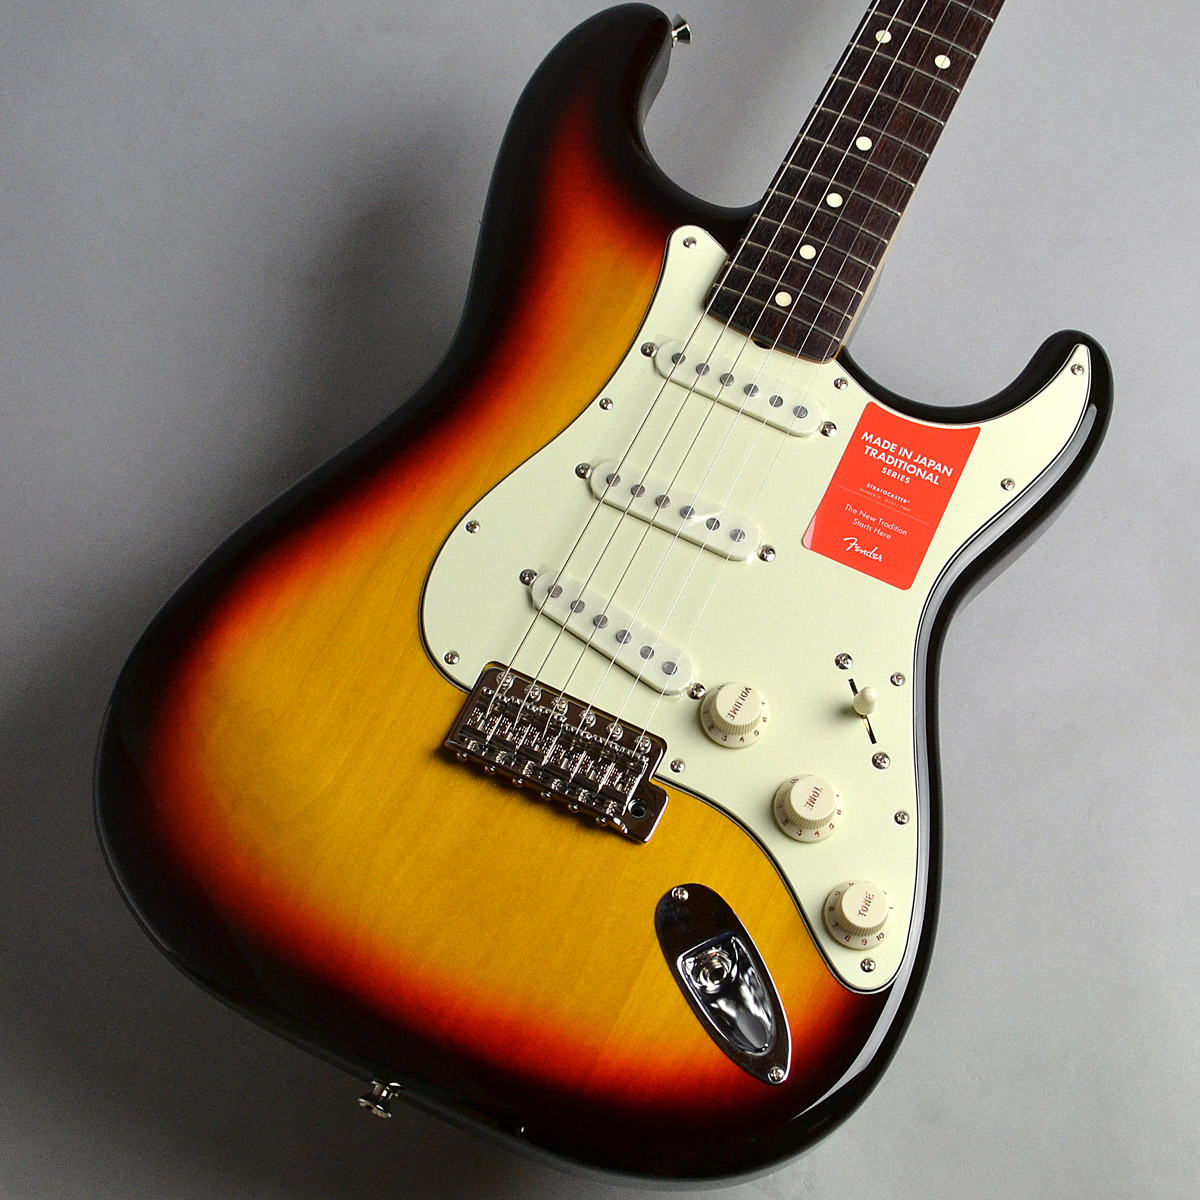 Made in Japan Traditional 60s Stratocasterのボディトップ-アップ画像